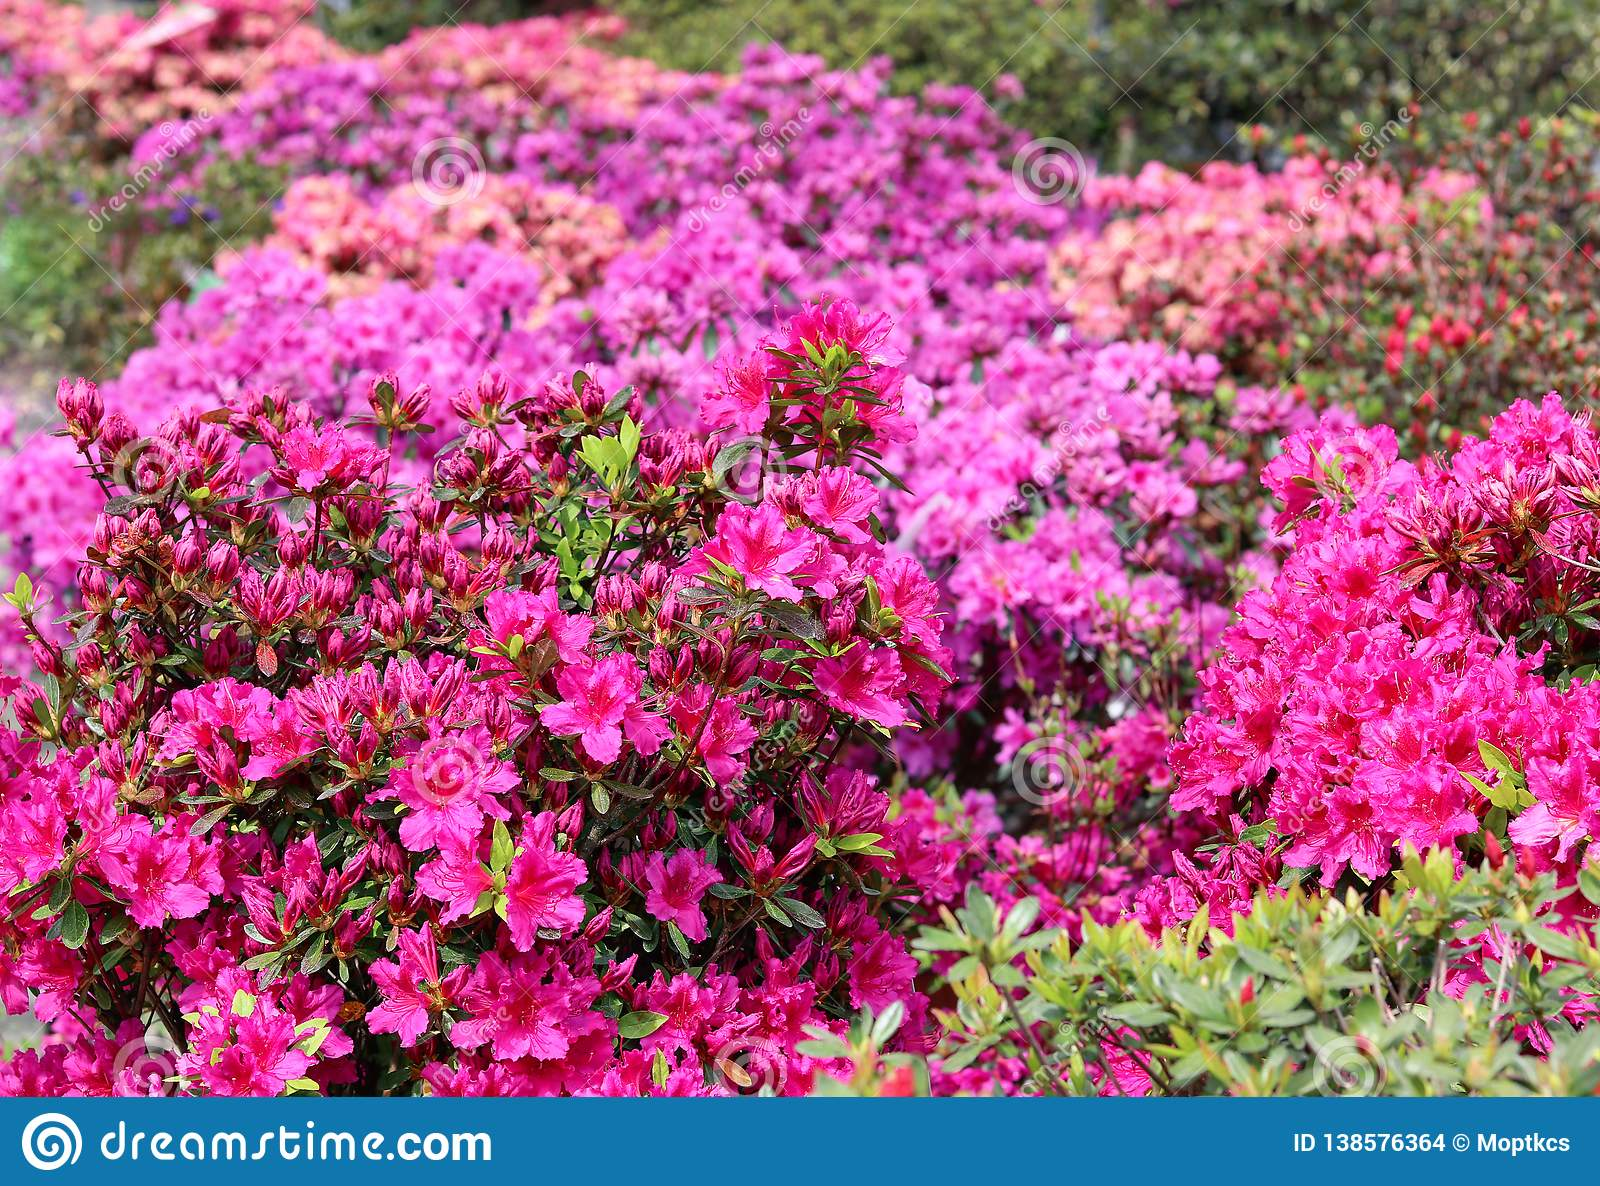 Rhododendron in full bloom with bright pink, coral and magenta flowers. Blooming azalea bushes with plenty of buds and flowers